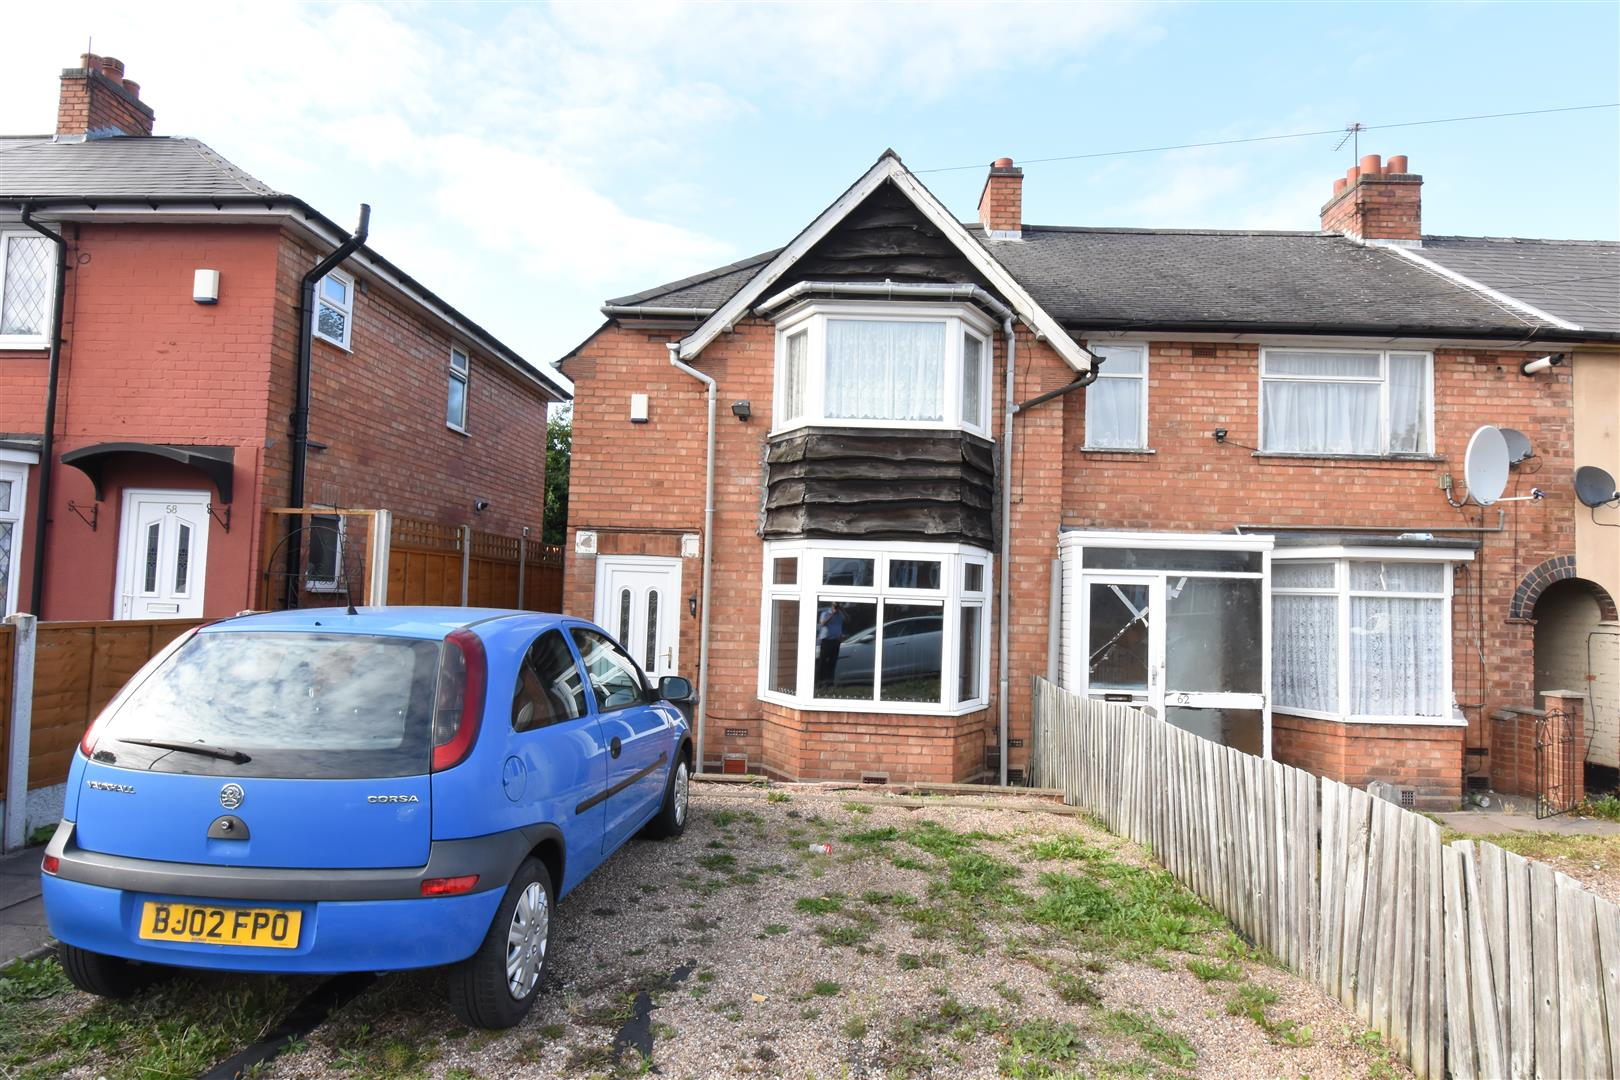 3 bed  for sale in Kenwood Road, Bordesley Green, Birmingham 1